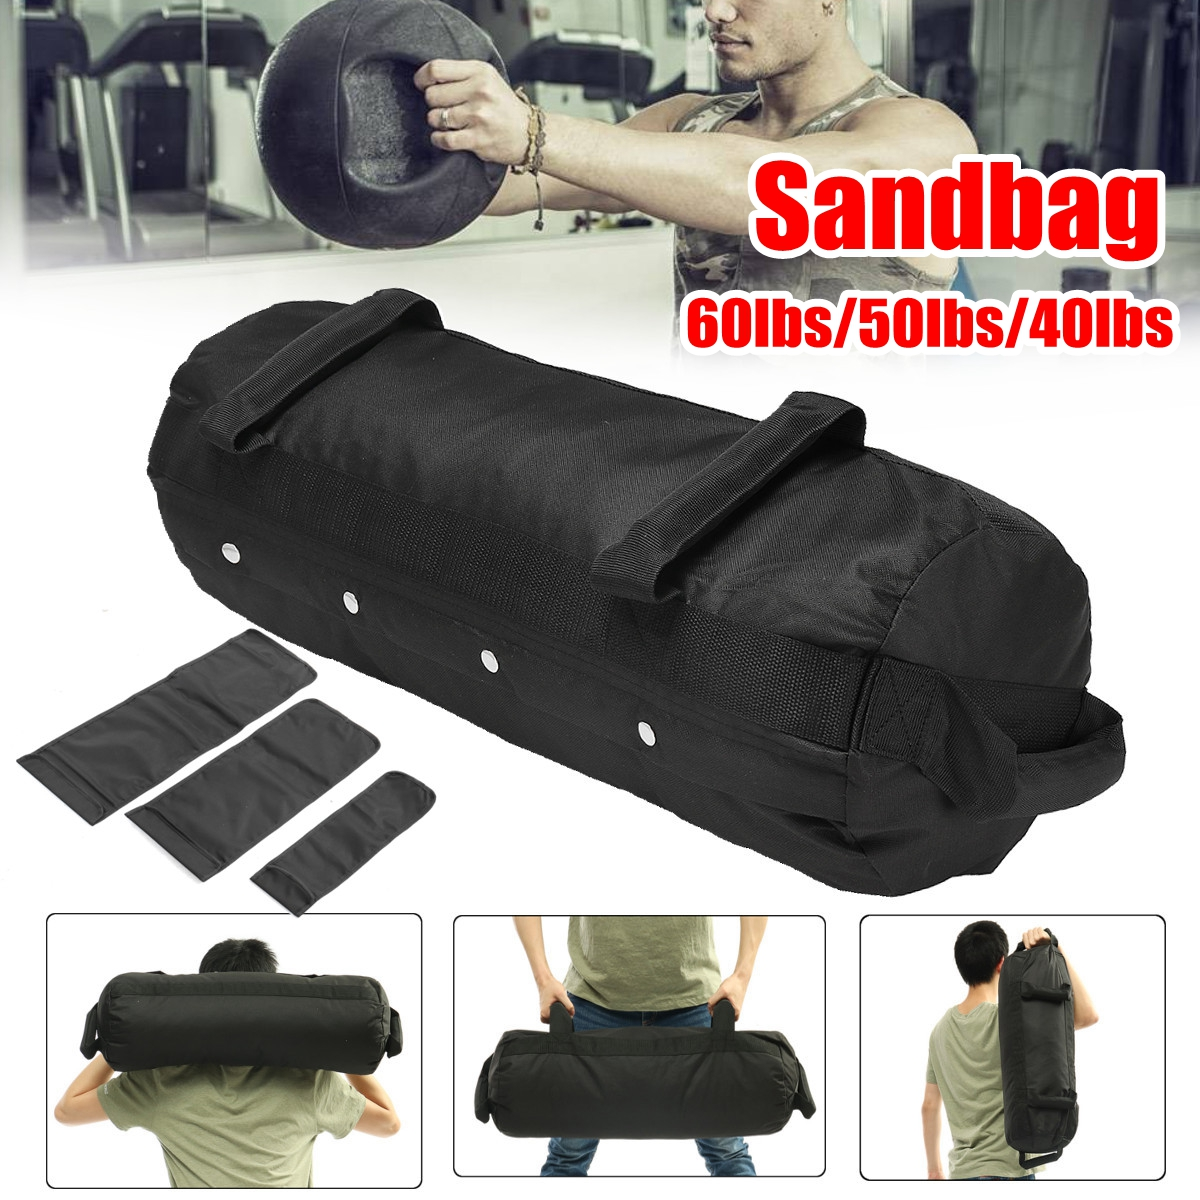 Boxing Punching Bag & Sand Bag 4 Pcs/set Weightlifting Sandbag Heavy Sand Bags Sand Bag Mma Boxing Crossfit Military Power Training Body Fitness Equipment